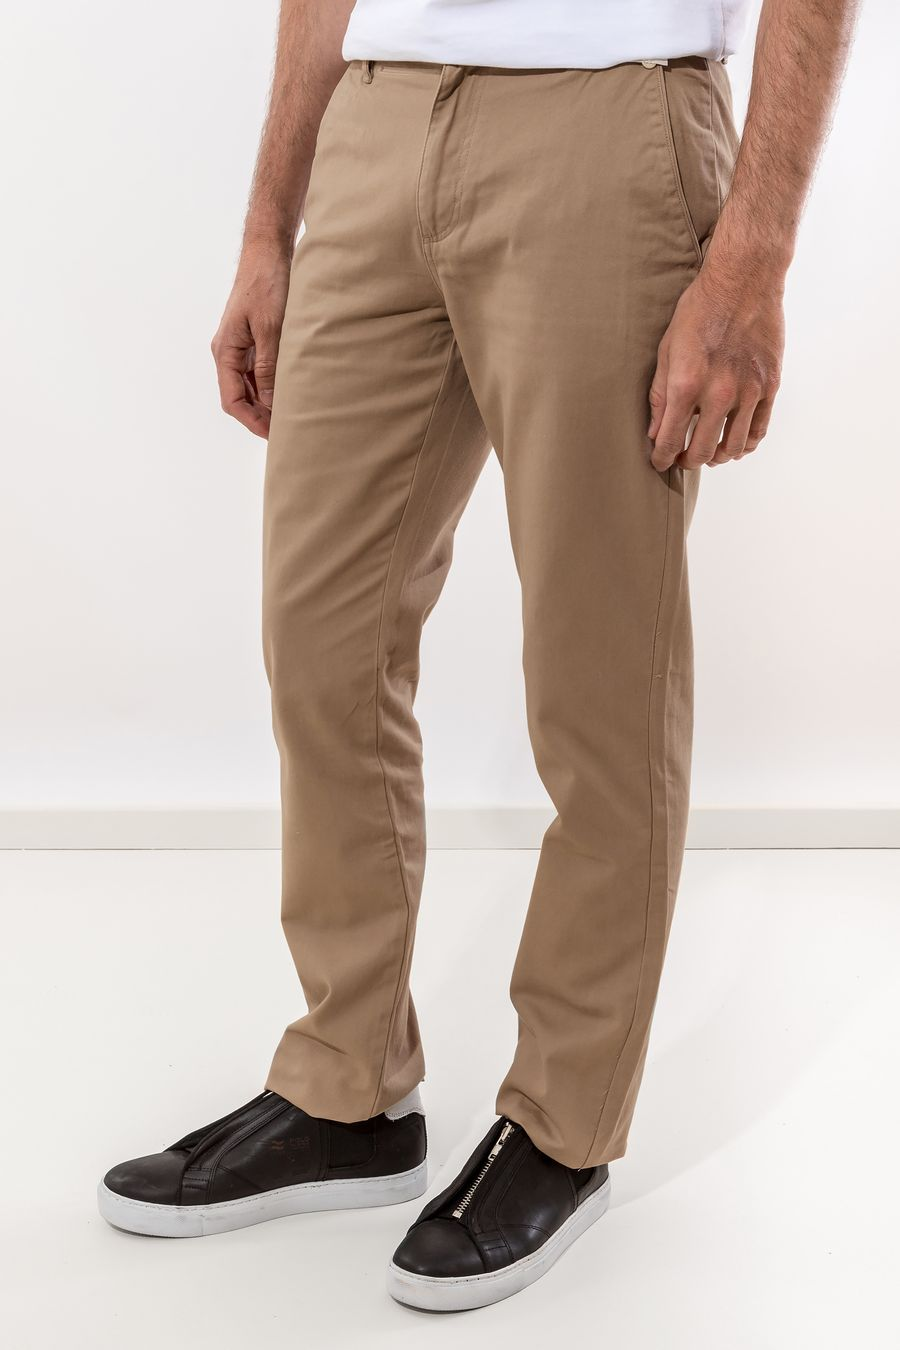 PANTALON-PA-BASIC-CHINO-REGULAR-KHAKI